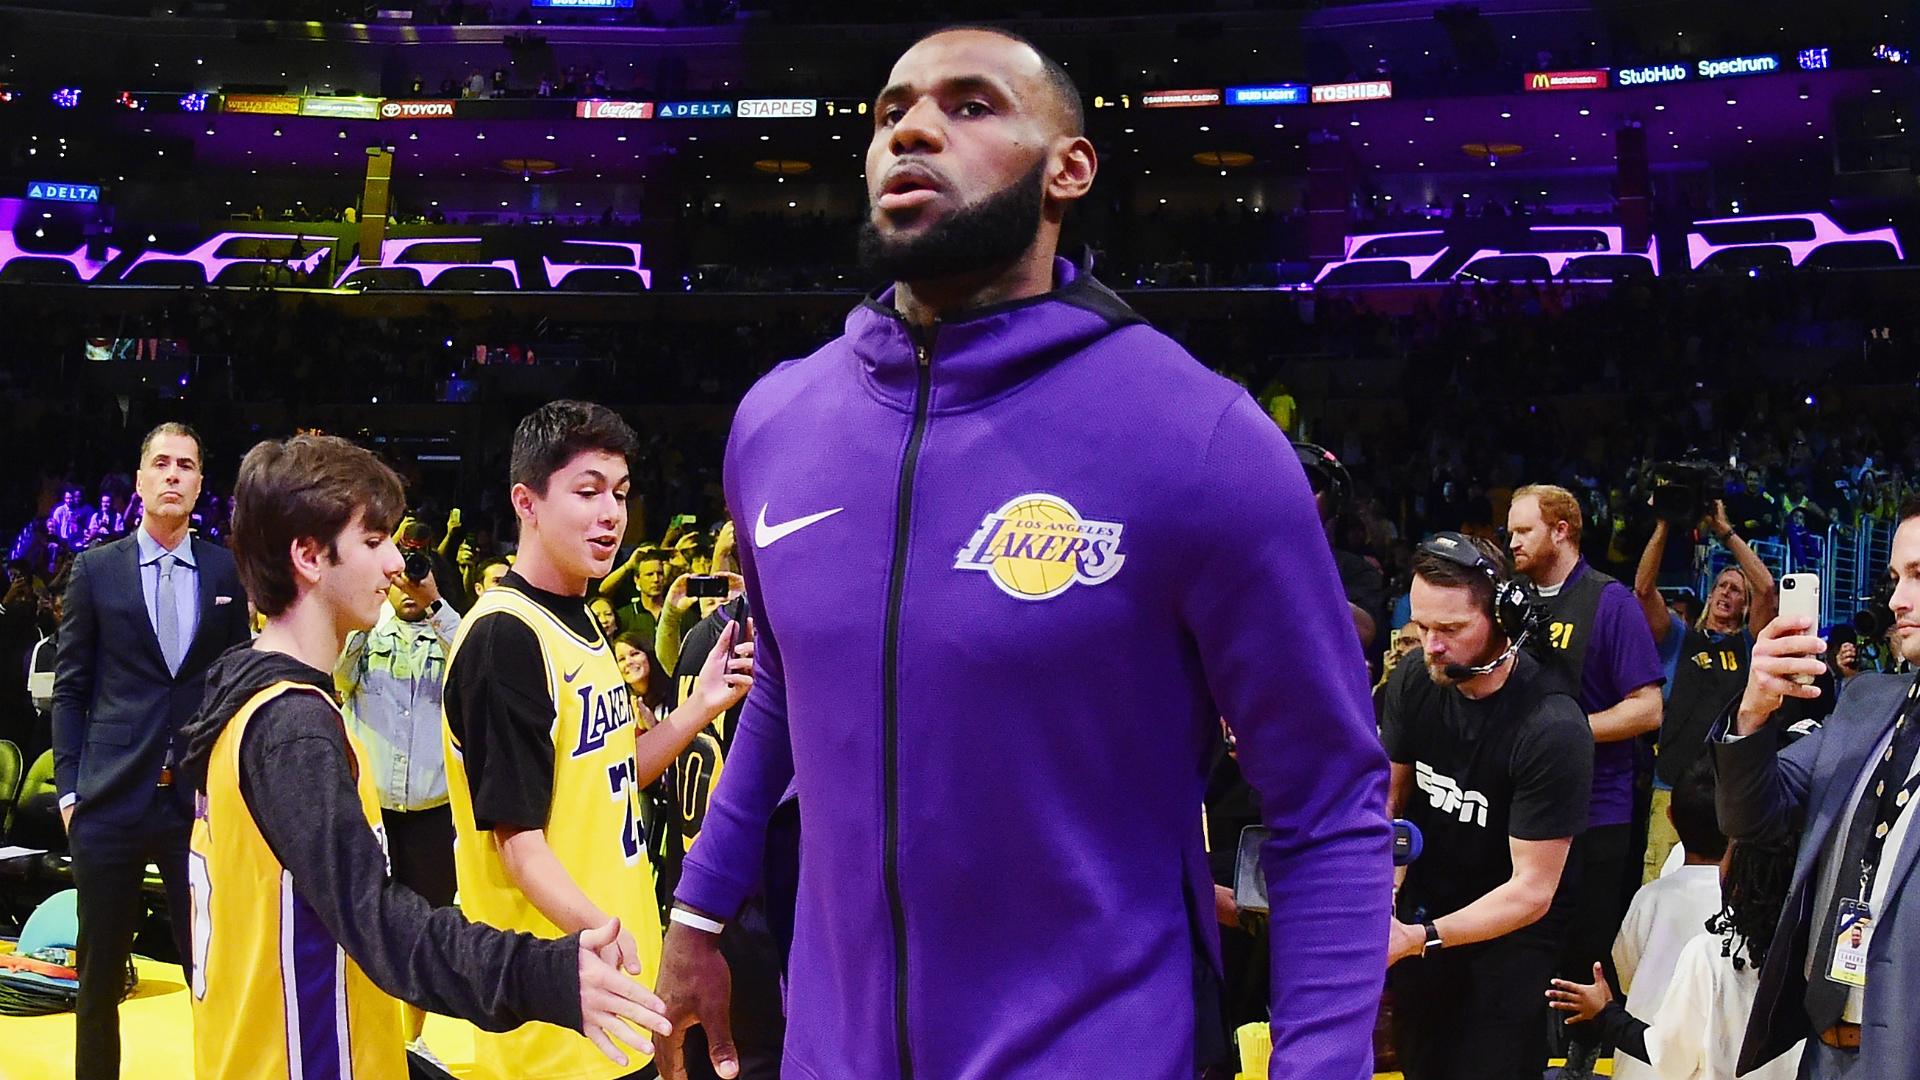 Longley hails LeBron's bravery after LA Lakers move